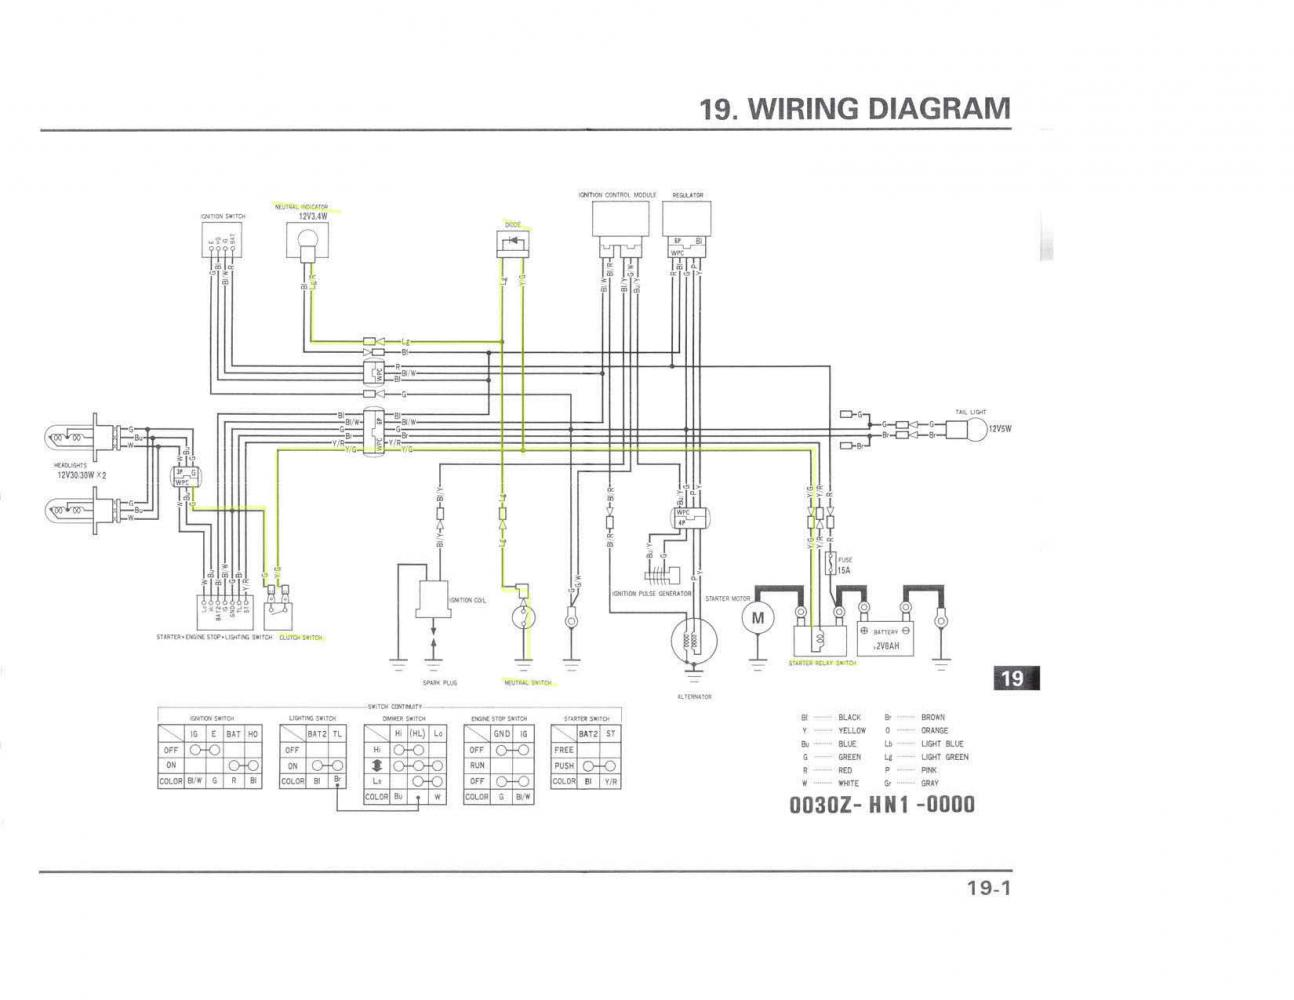 2005 Honda 400ex Wiring Diagram : 31 Wiring Diagram Images